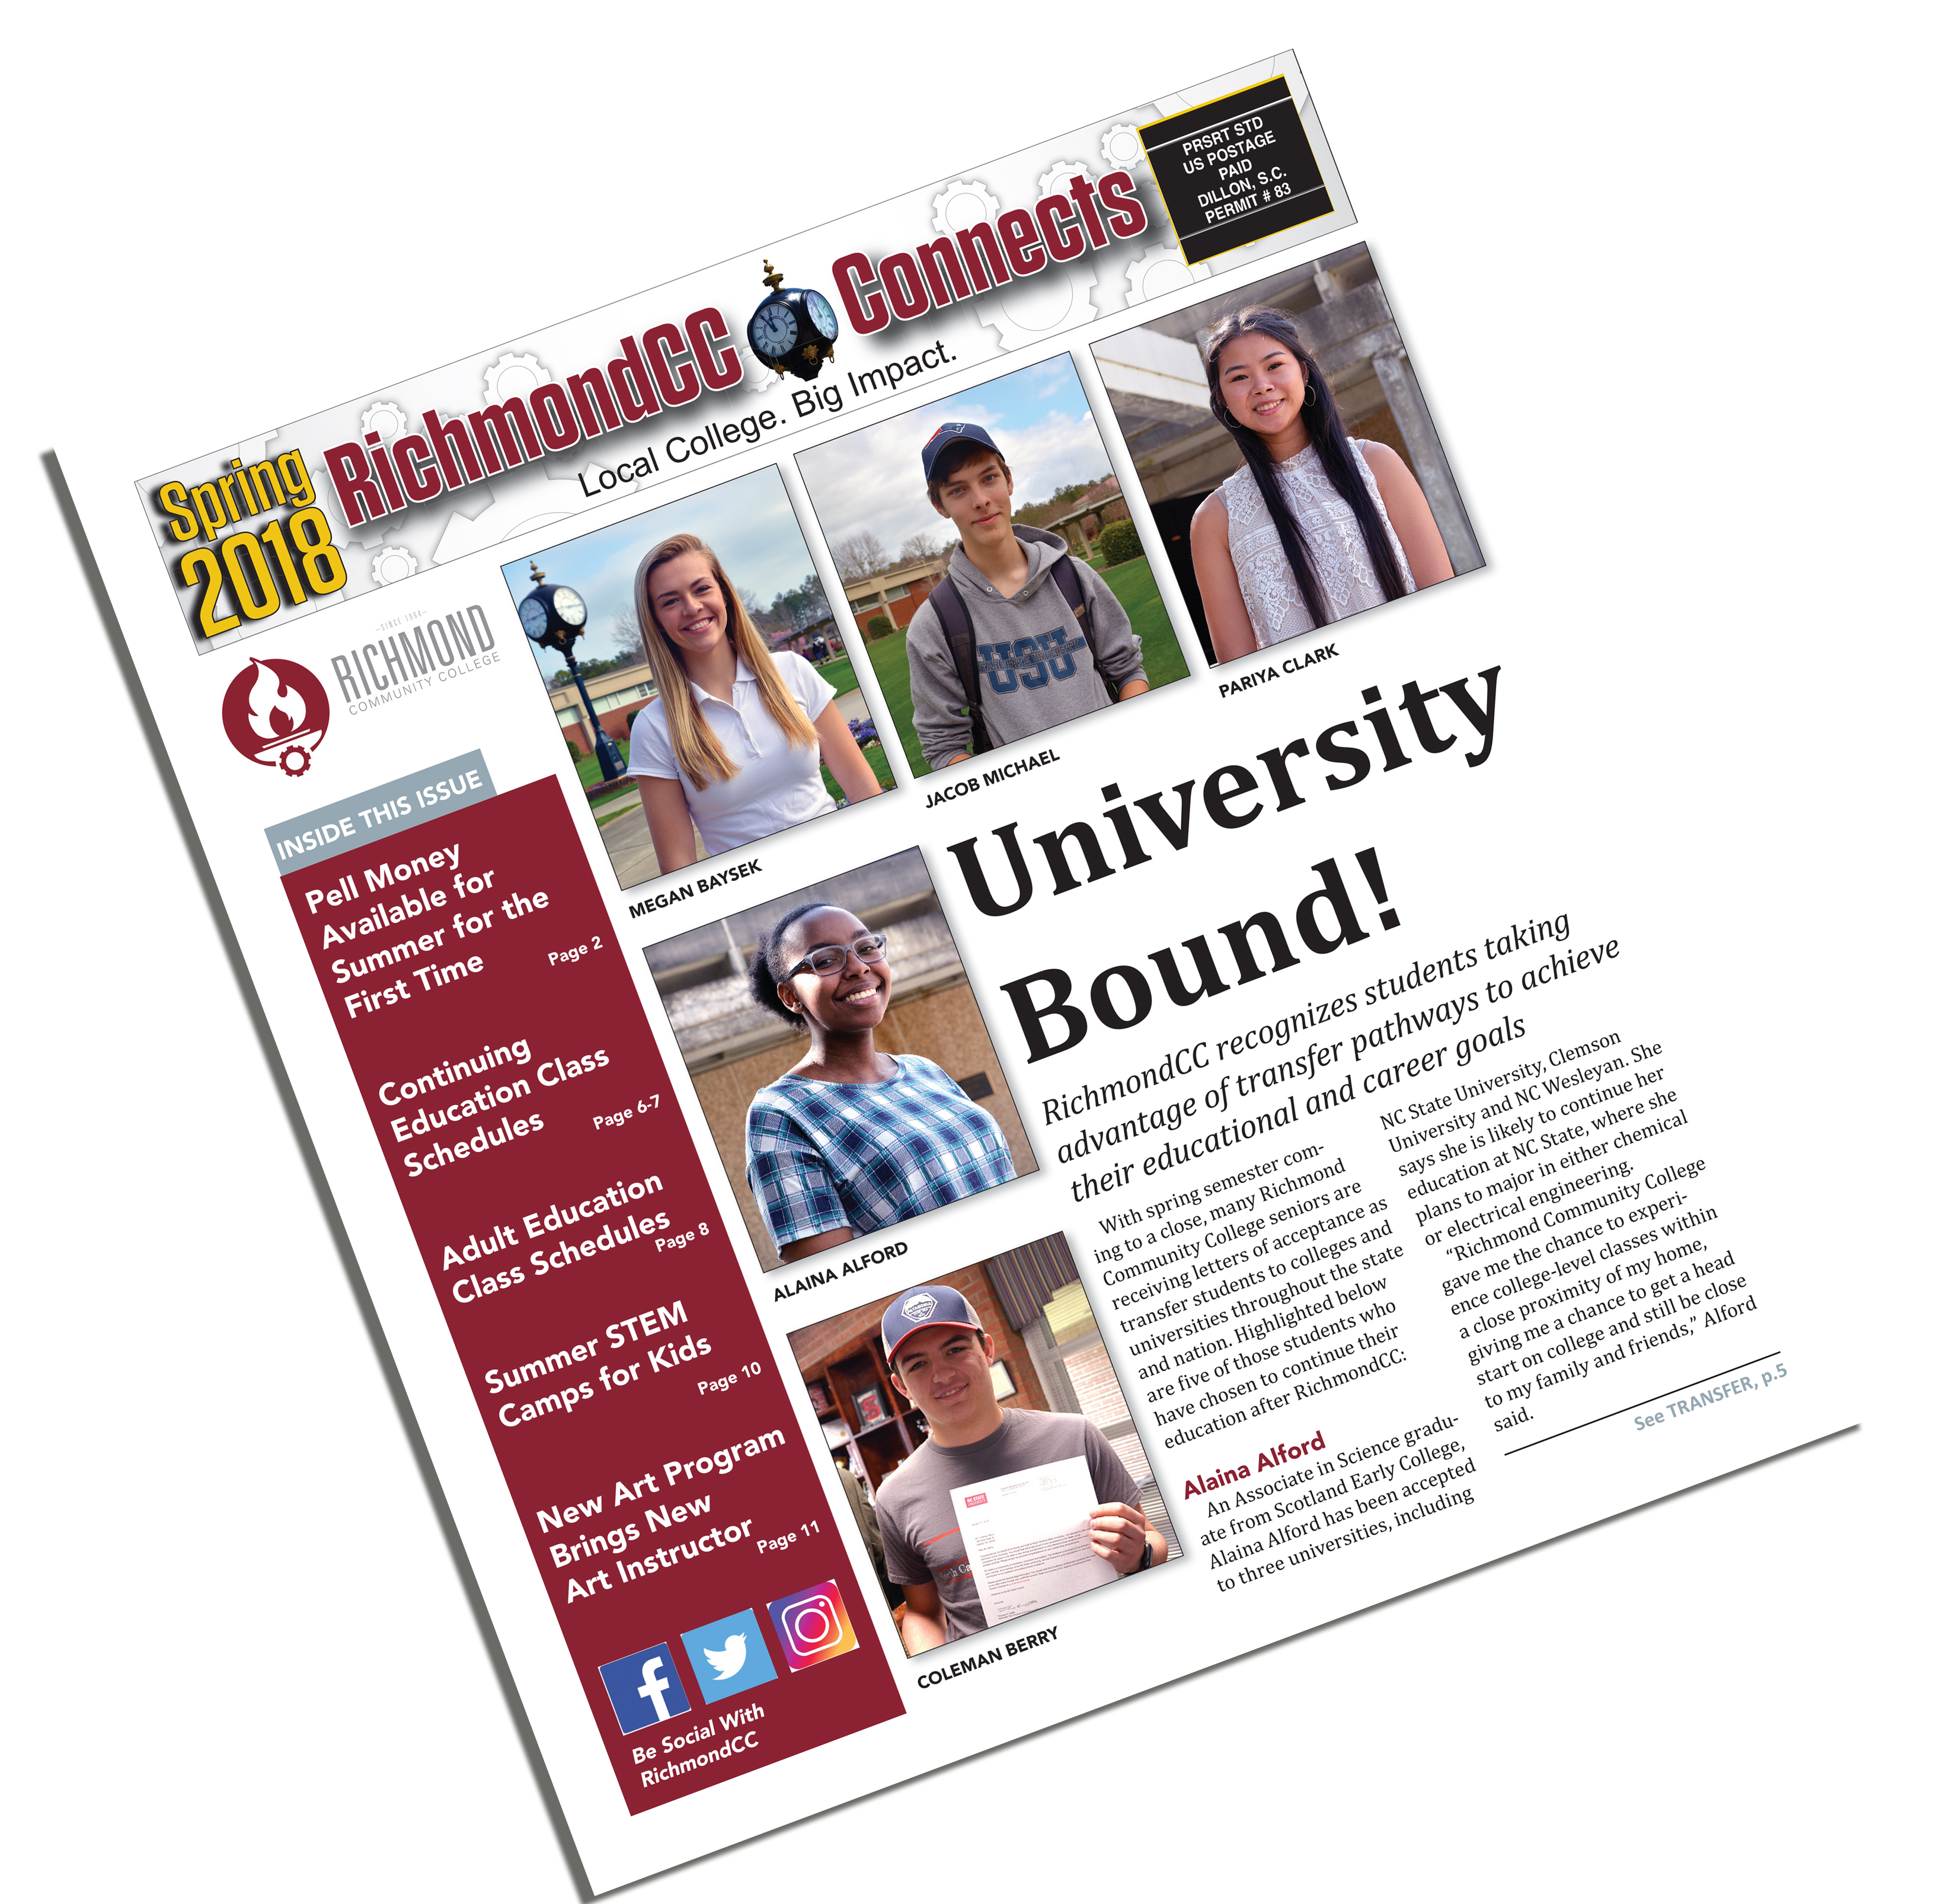 Photo of the front page of the newspaper RichmondCC Connects